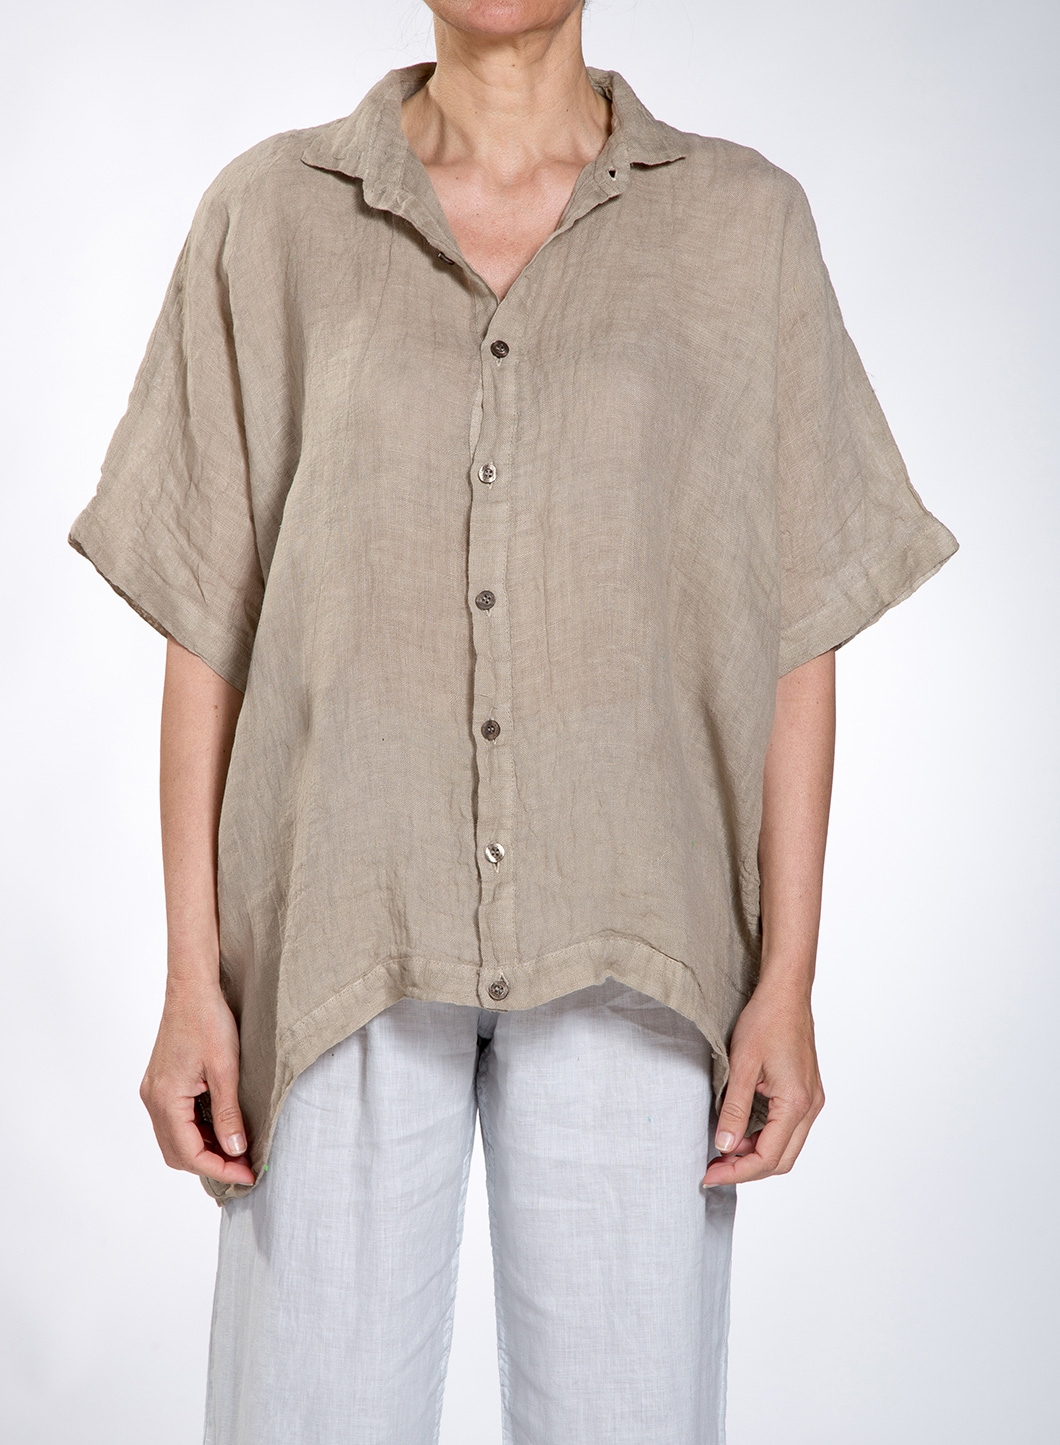 Tencel Shirts For Women